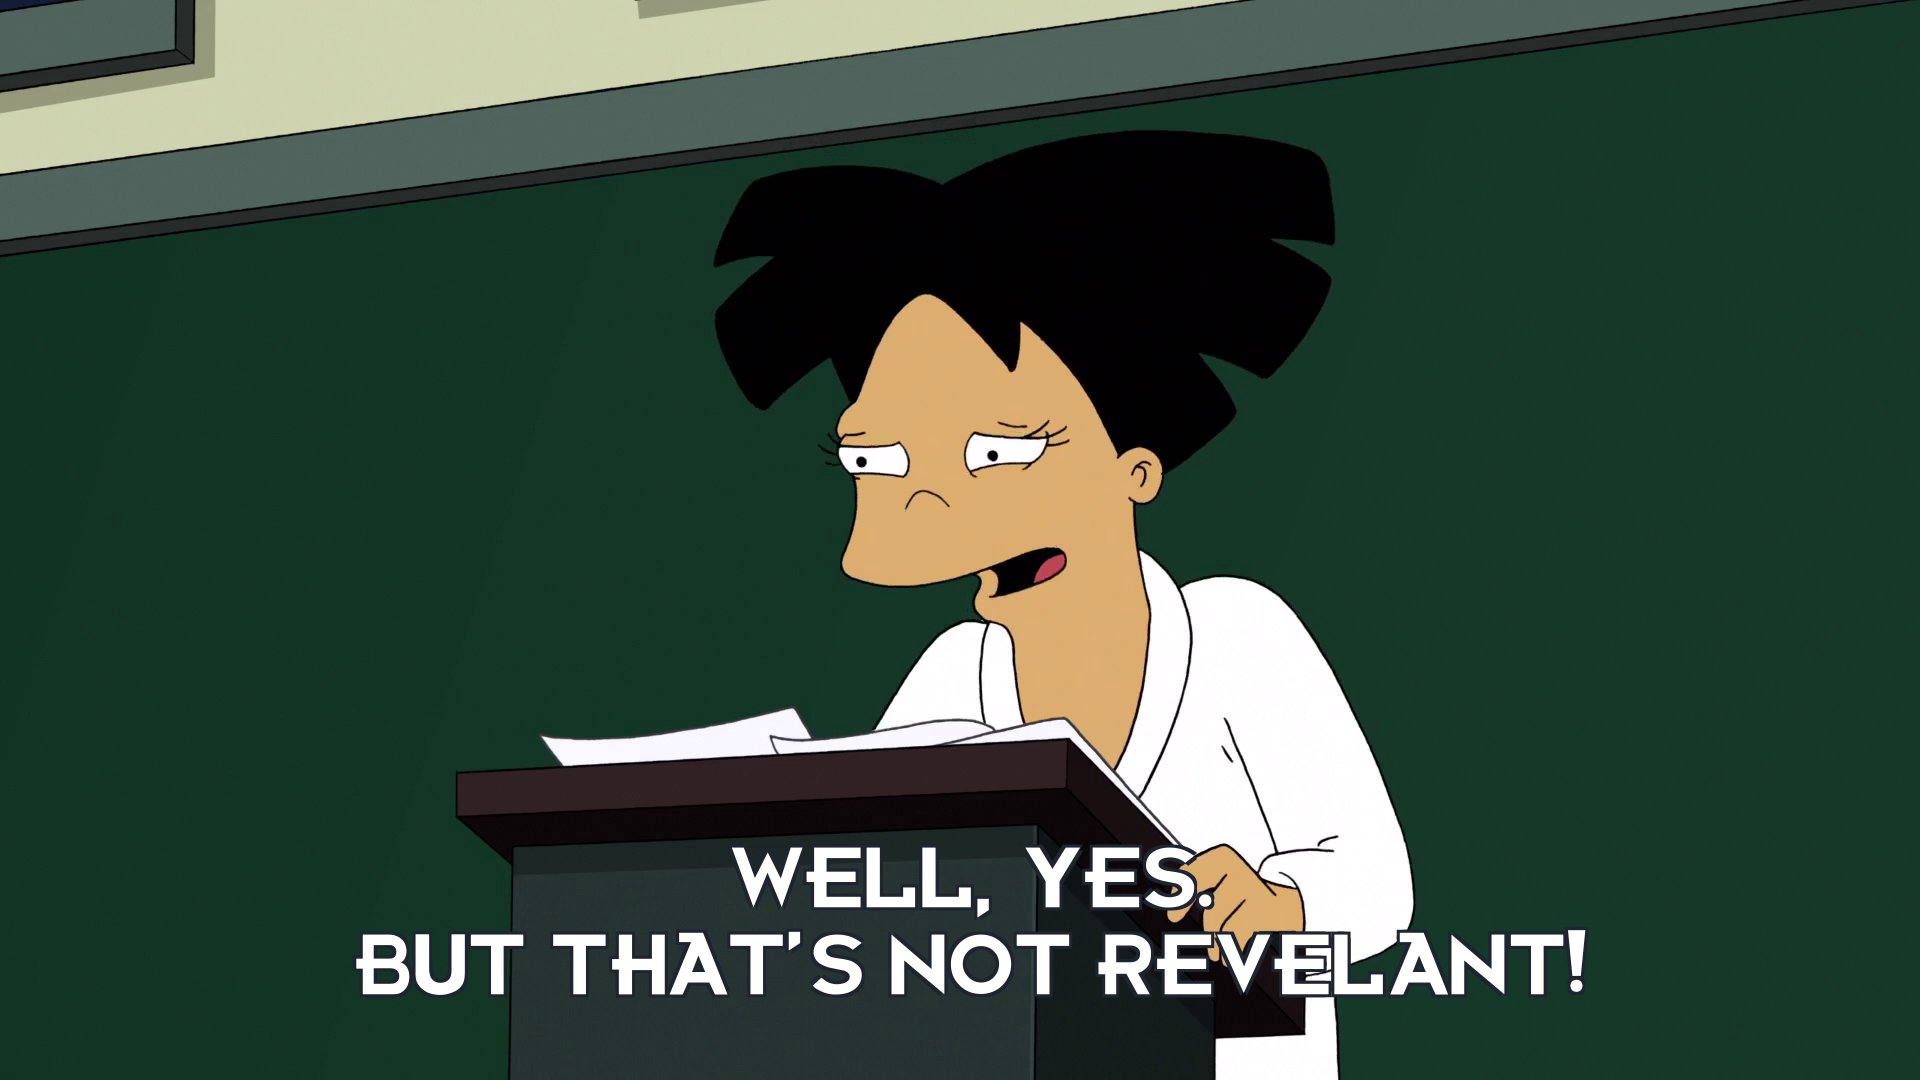 Amy Wong: Well, yes. But that's not revelant!